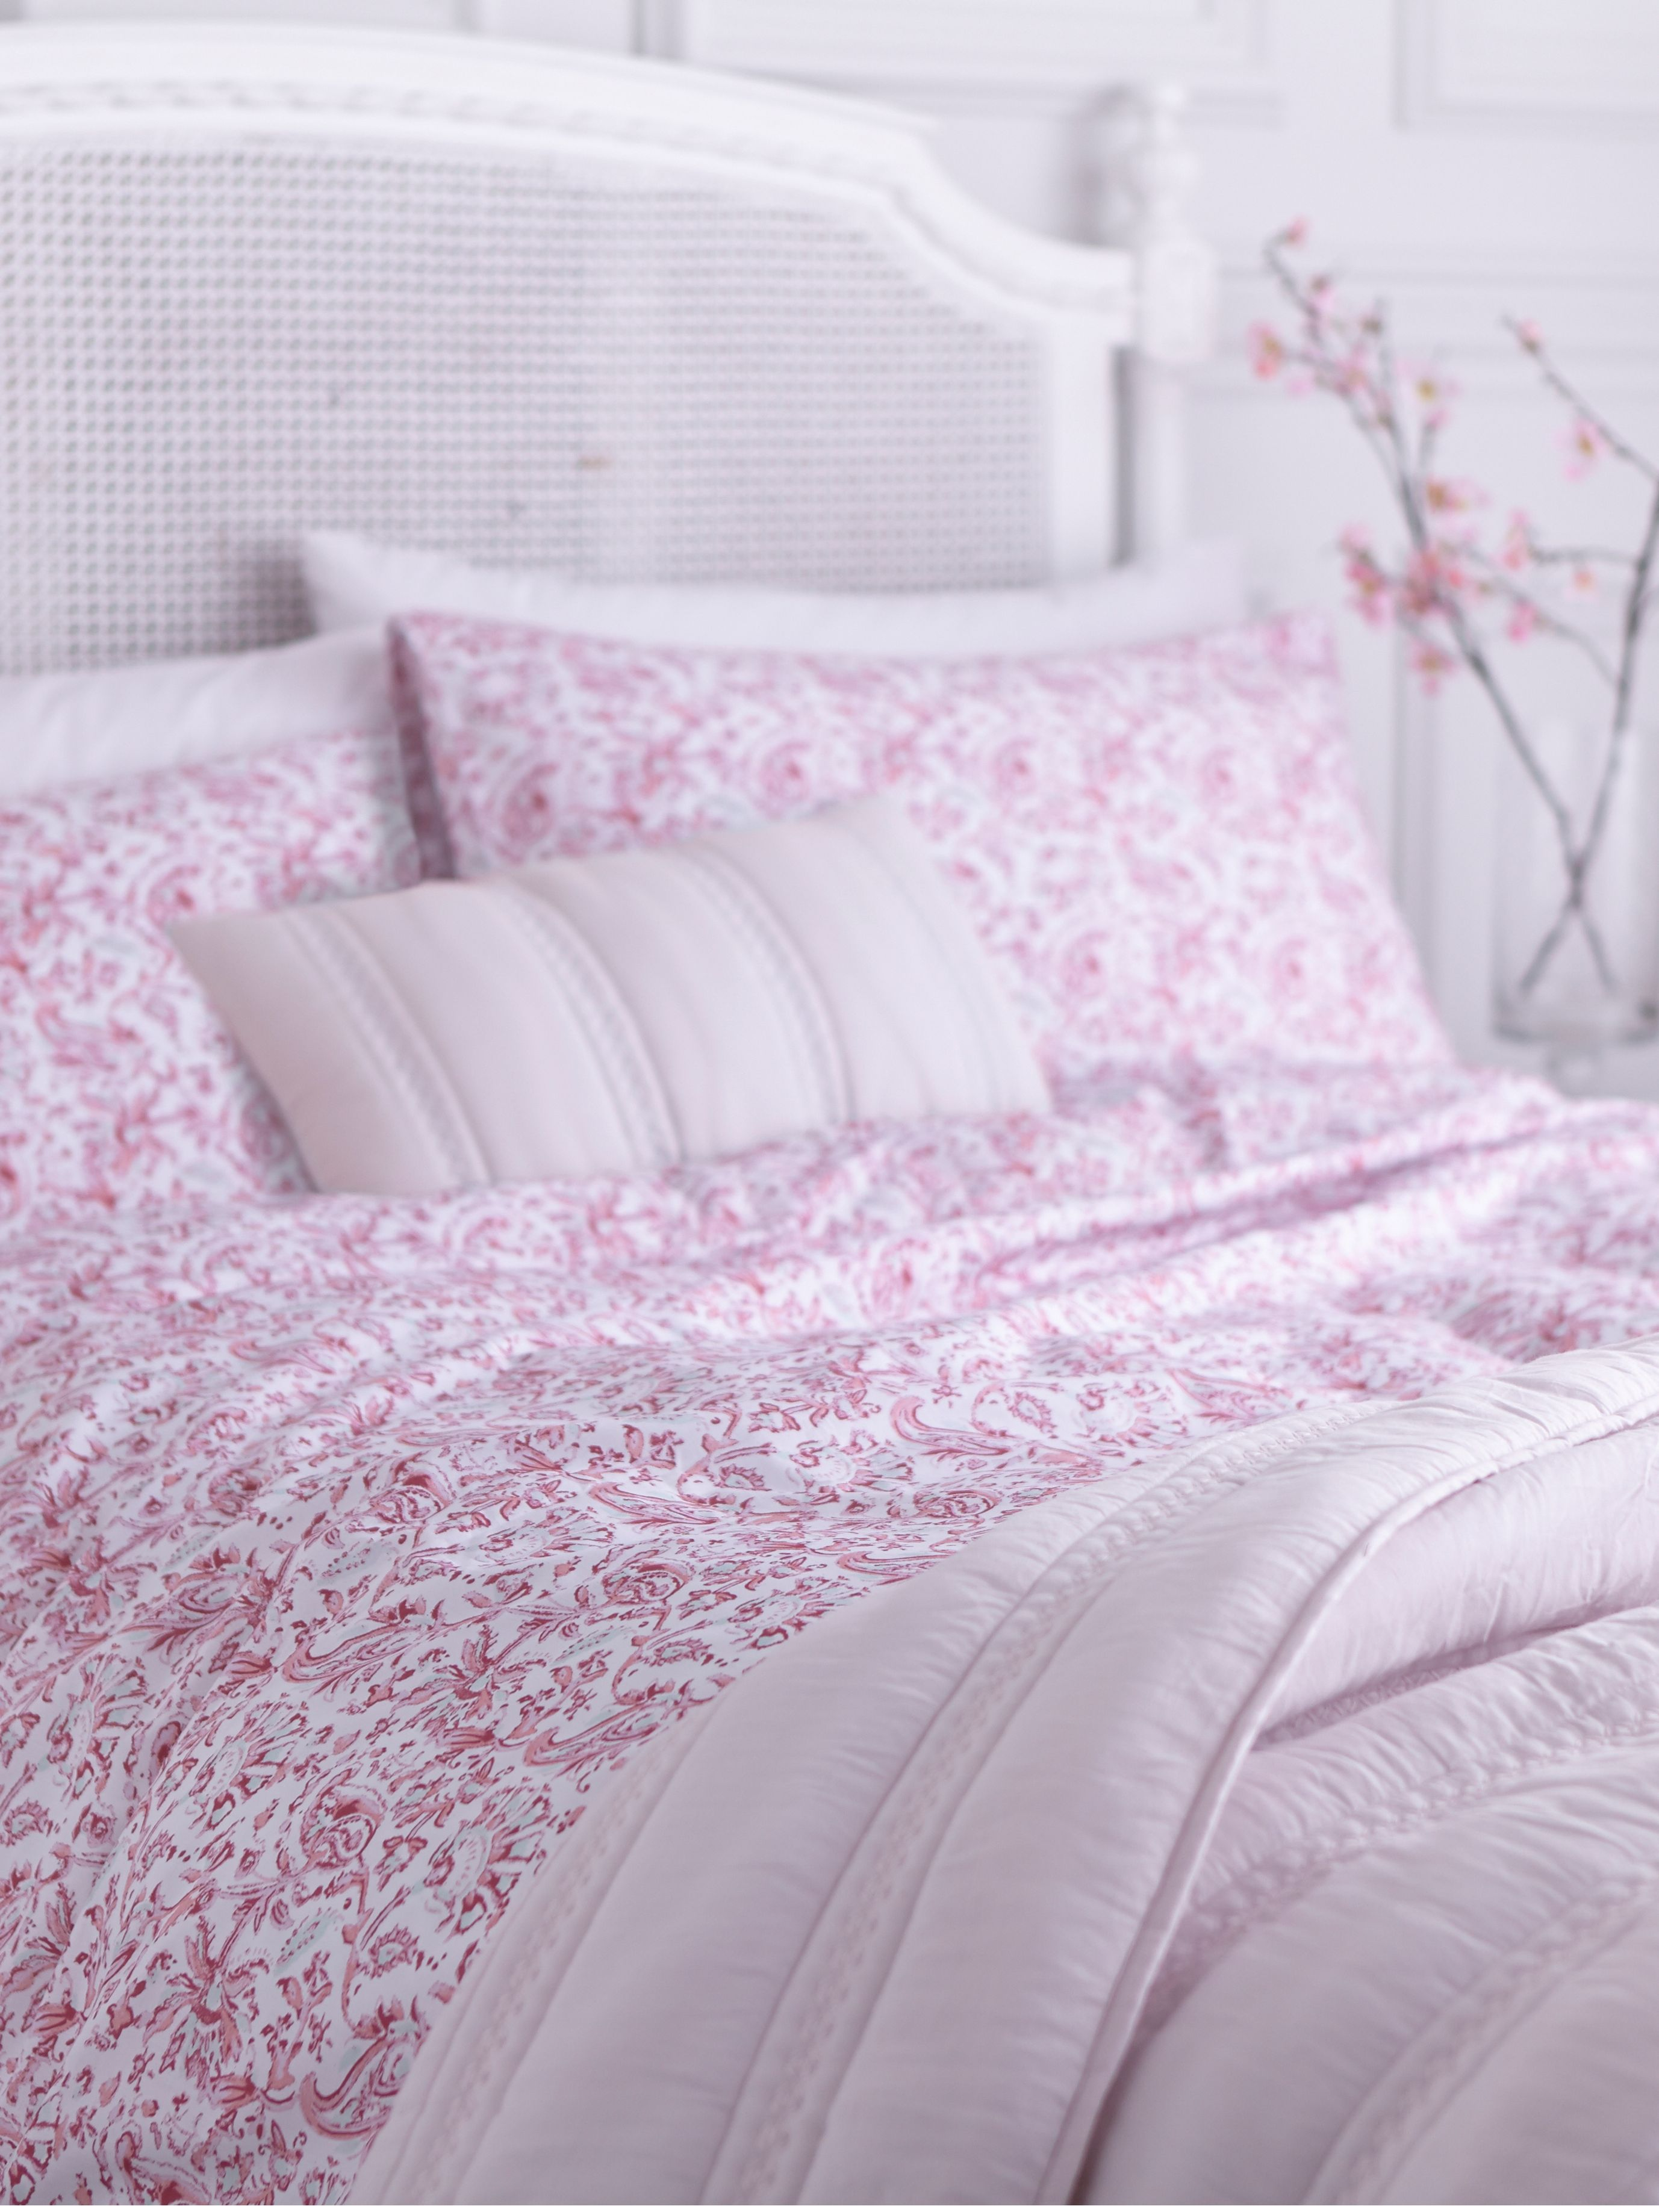 Indes floral king duvet cover